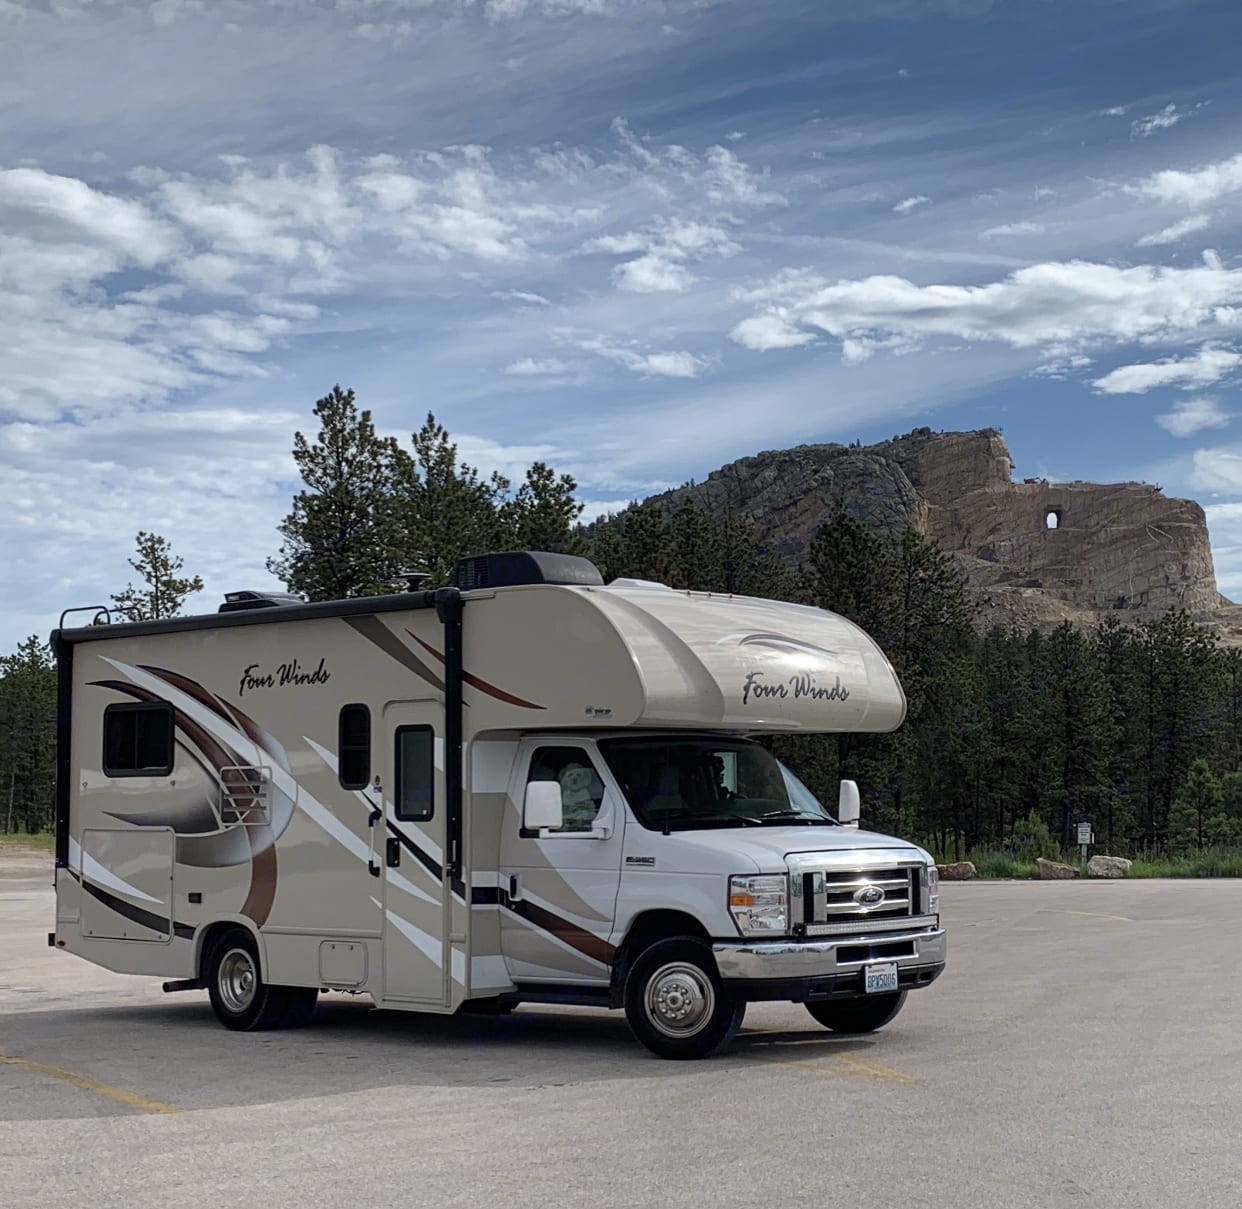 Stopped to check out Crazy Horse in South Dakota!. Ford Fourwinds 2019